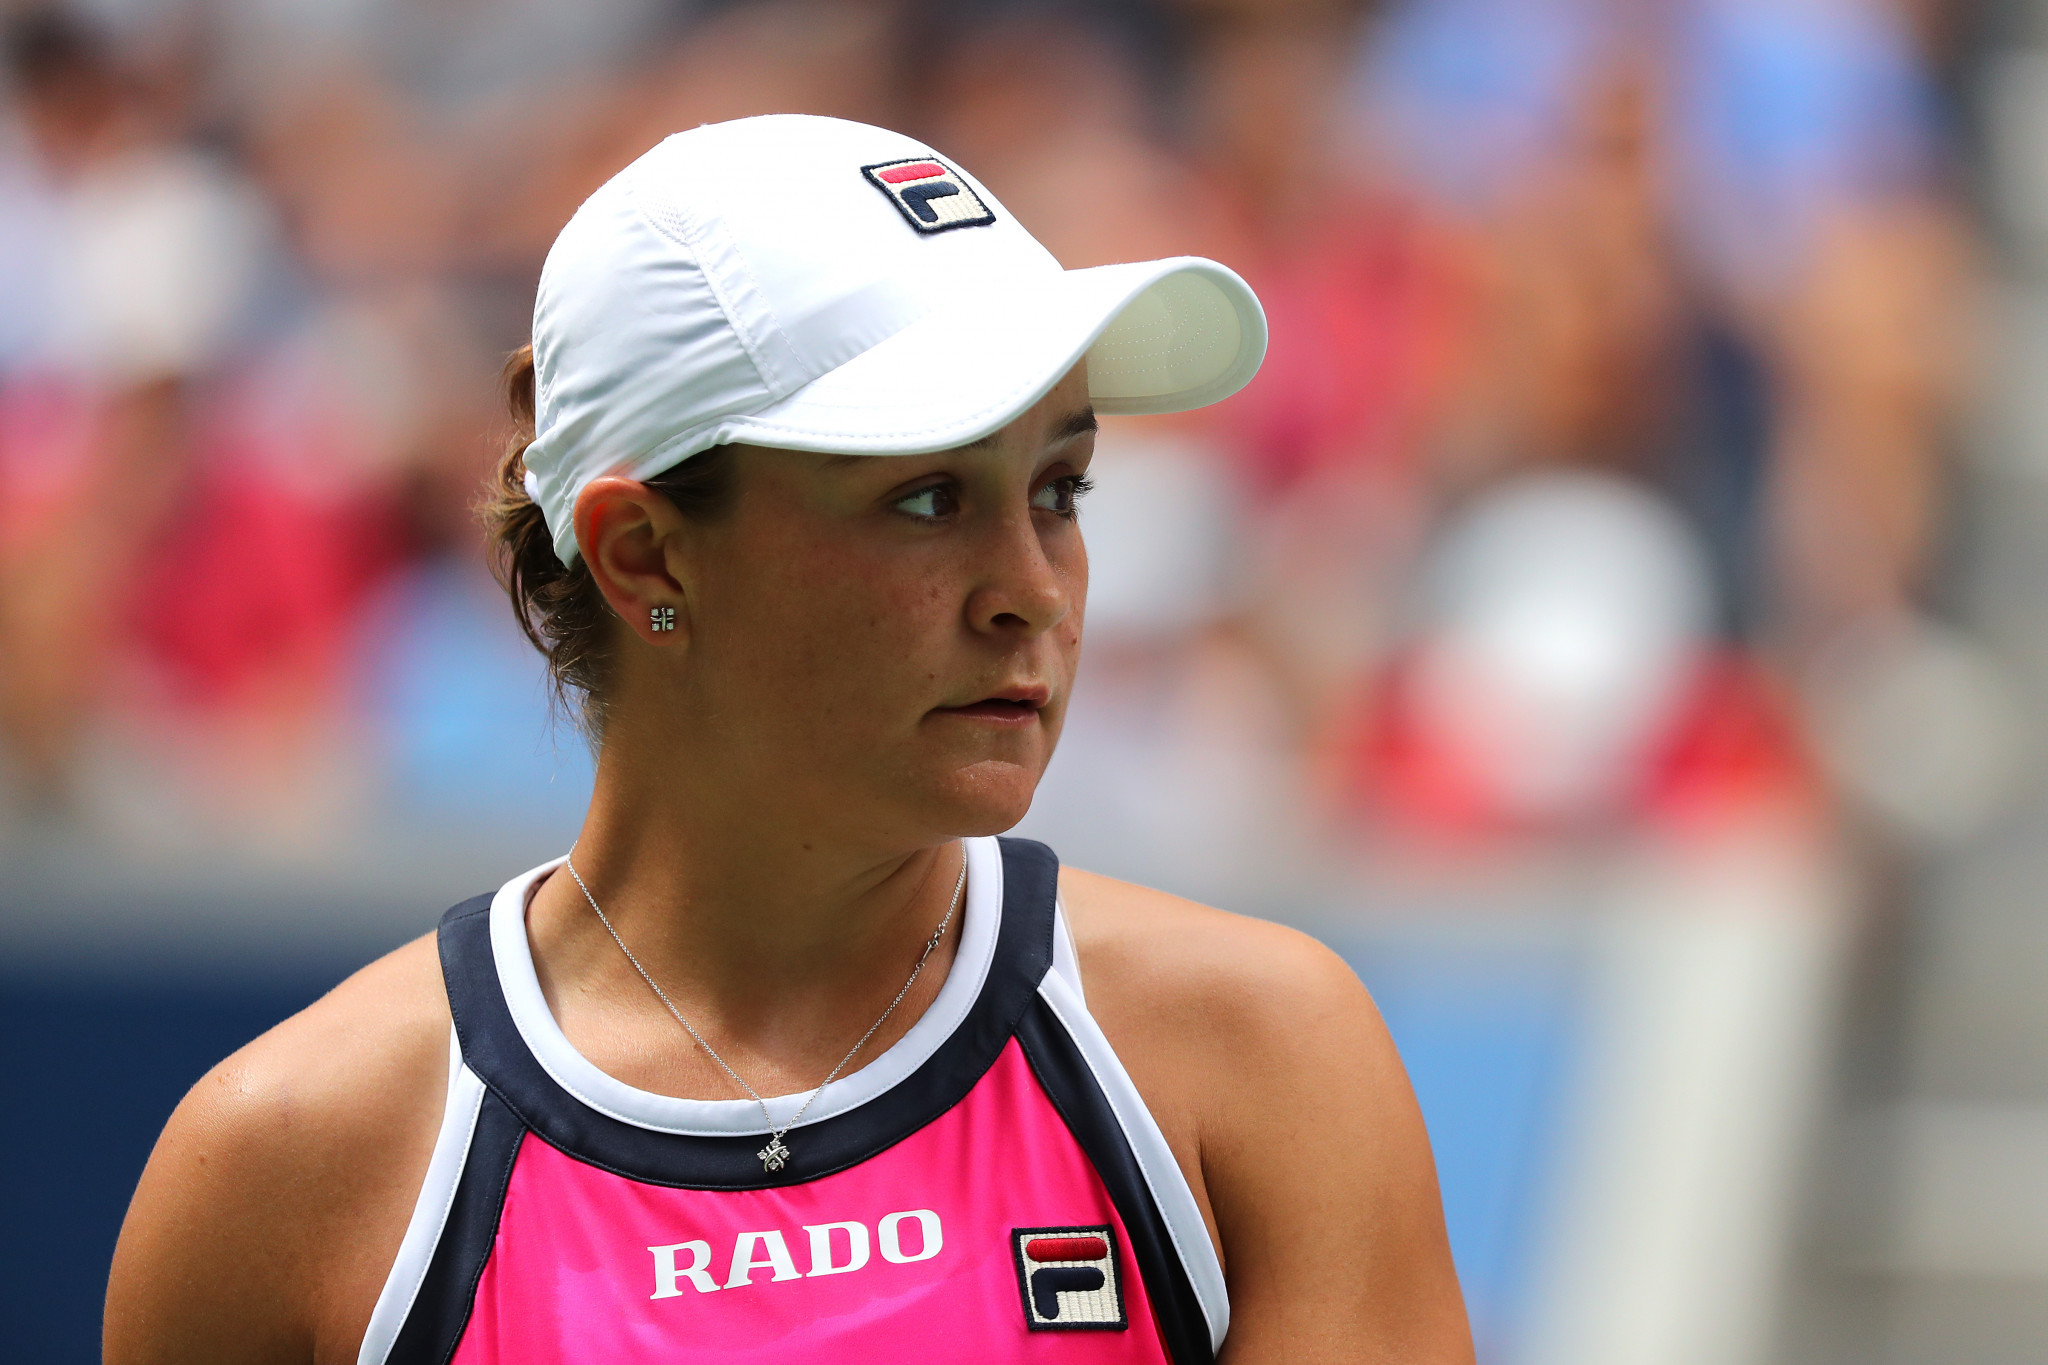 World number one Barty to miss US Open over coronavirus fears